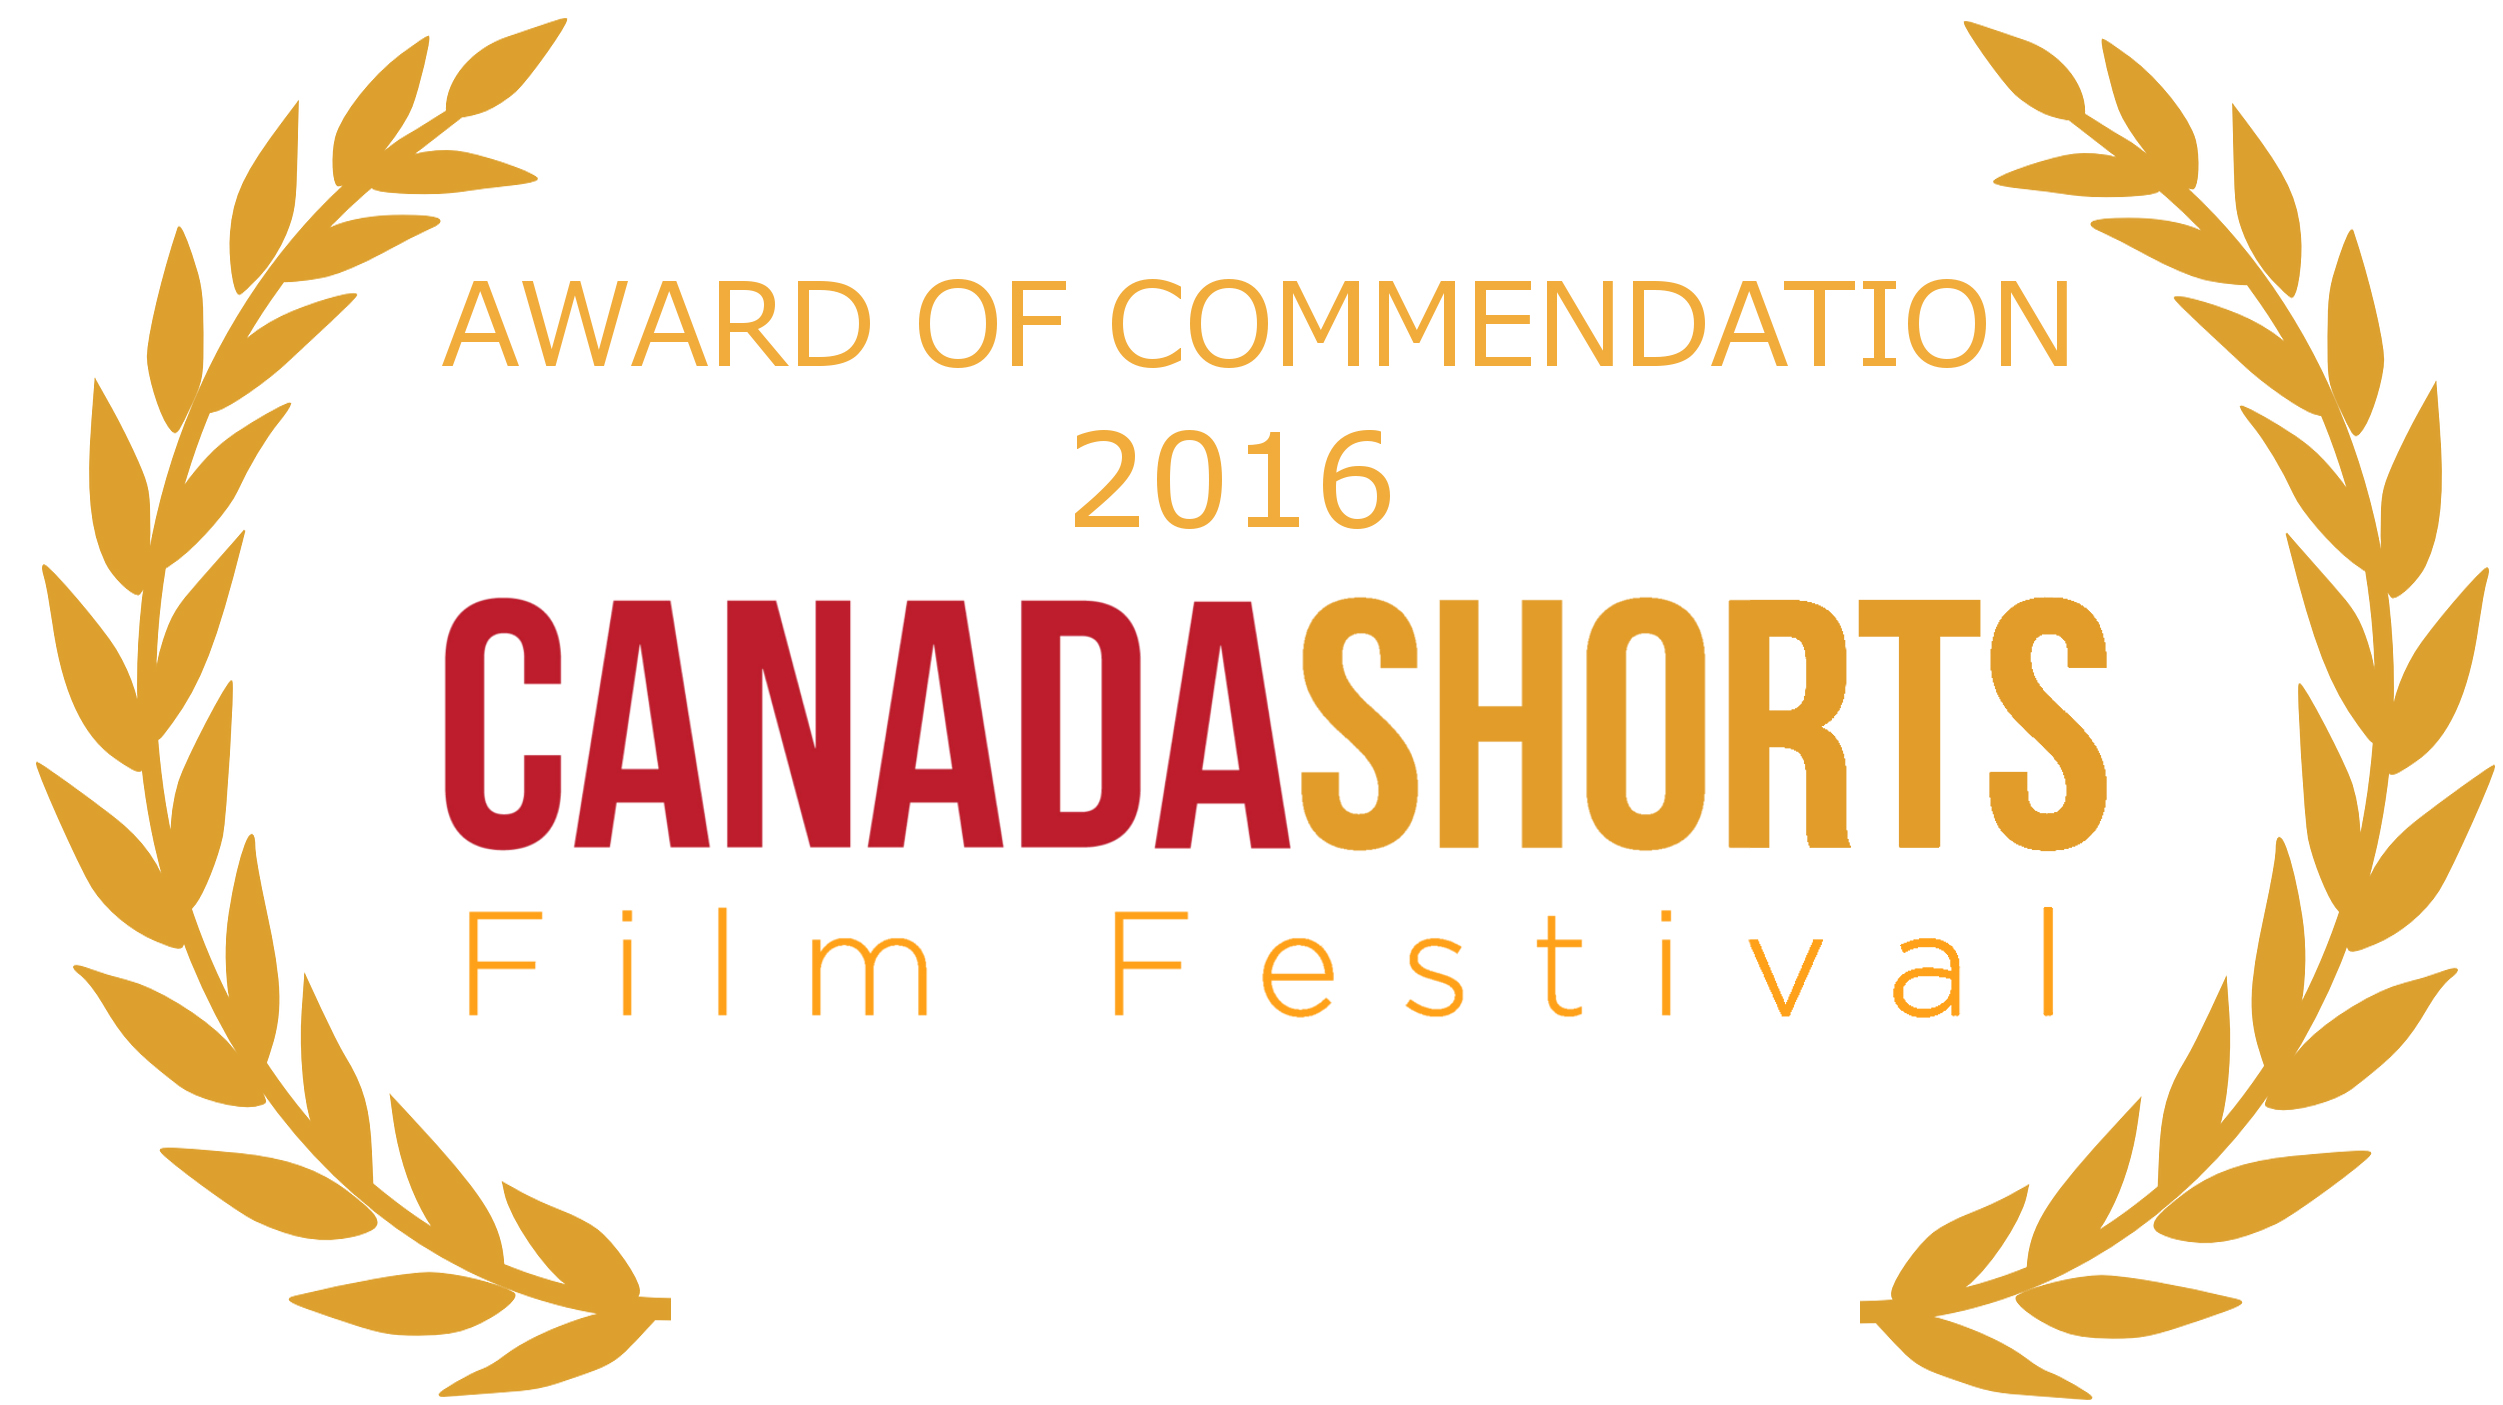 canada-shorts-award-of-commendation-laurel-gold-copy